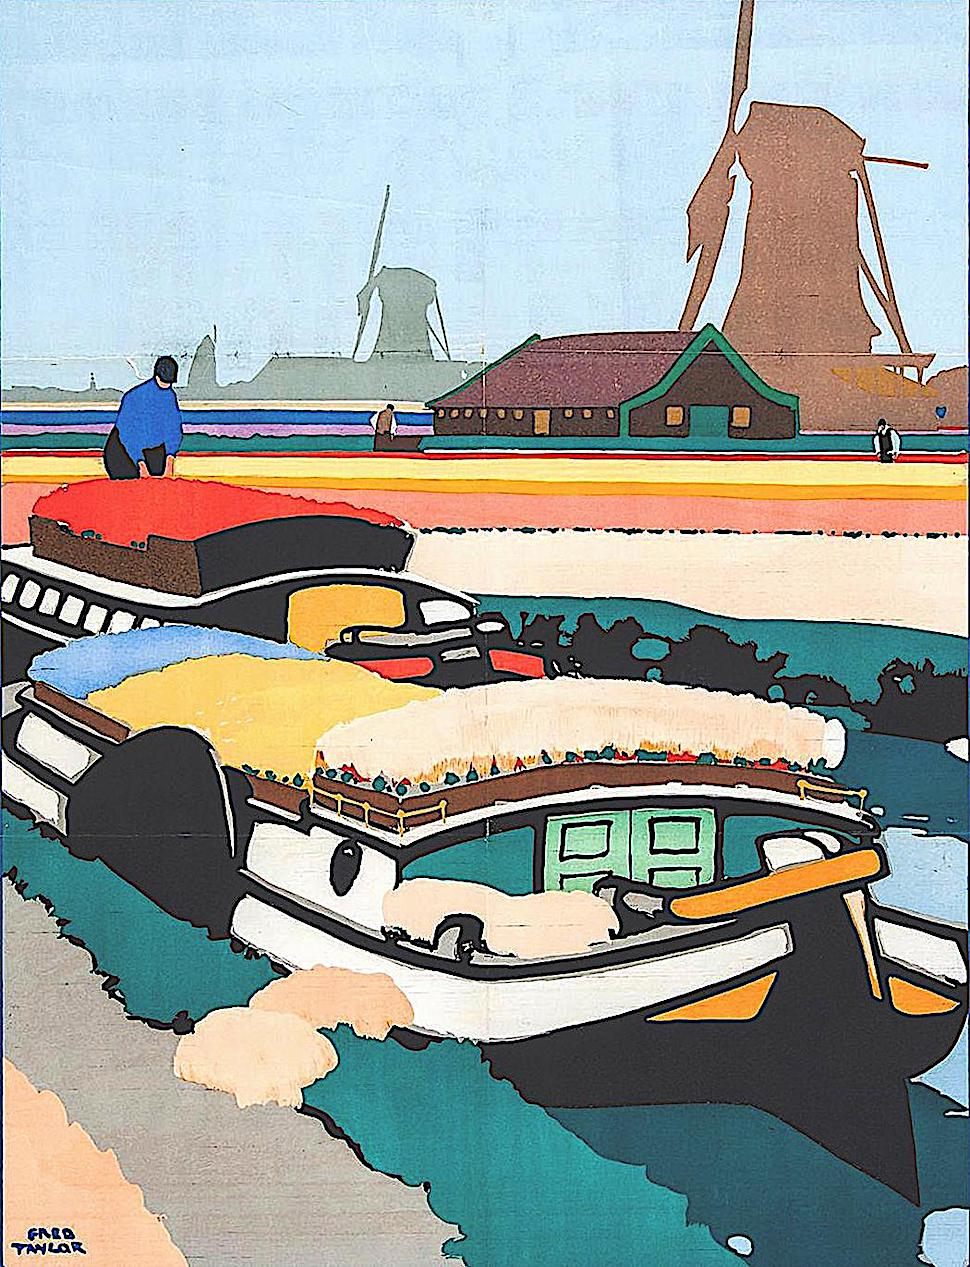 a Fred Taylor travel poster illustration of a farm boat loaded with flowers